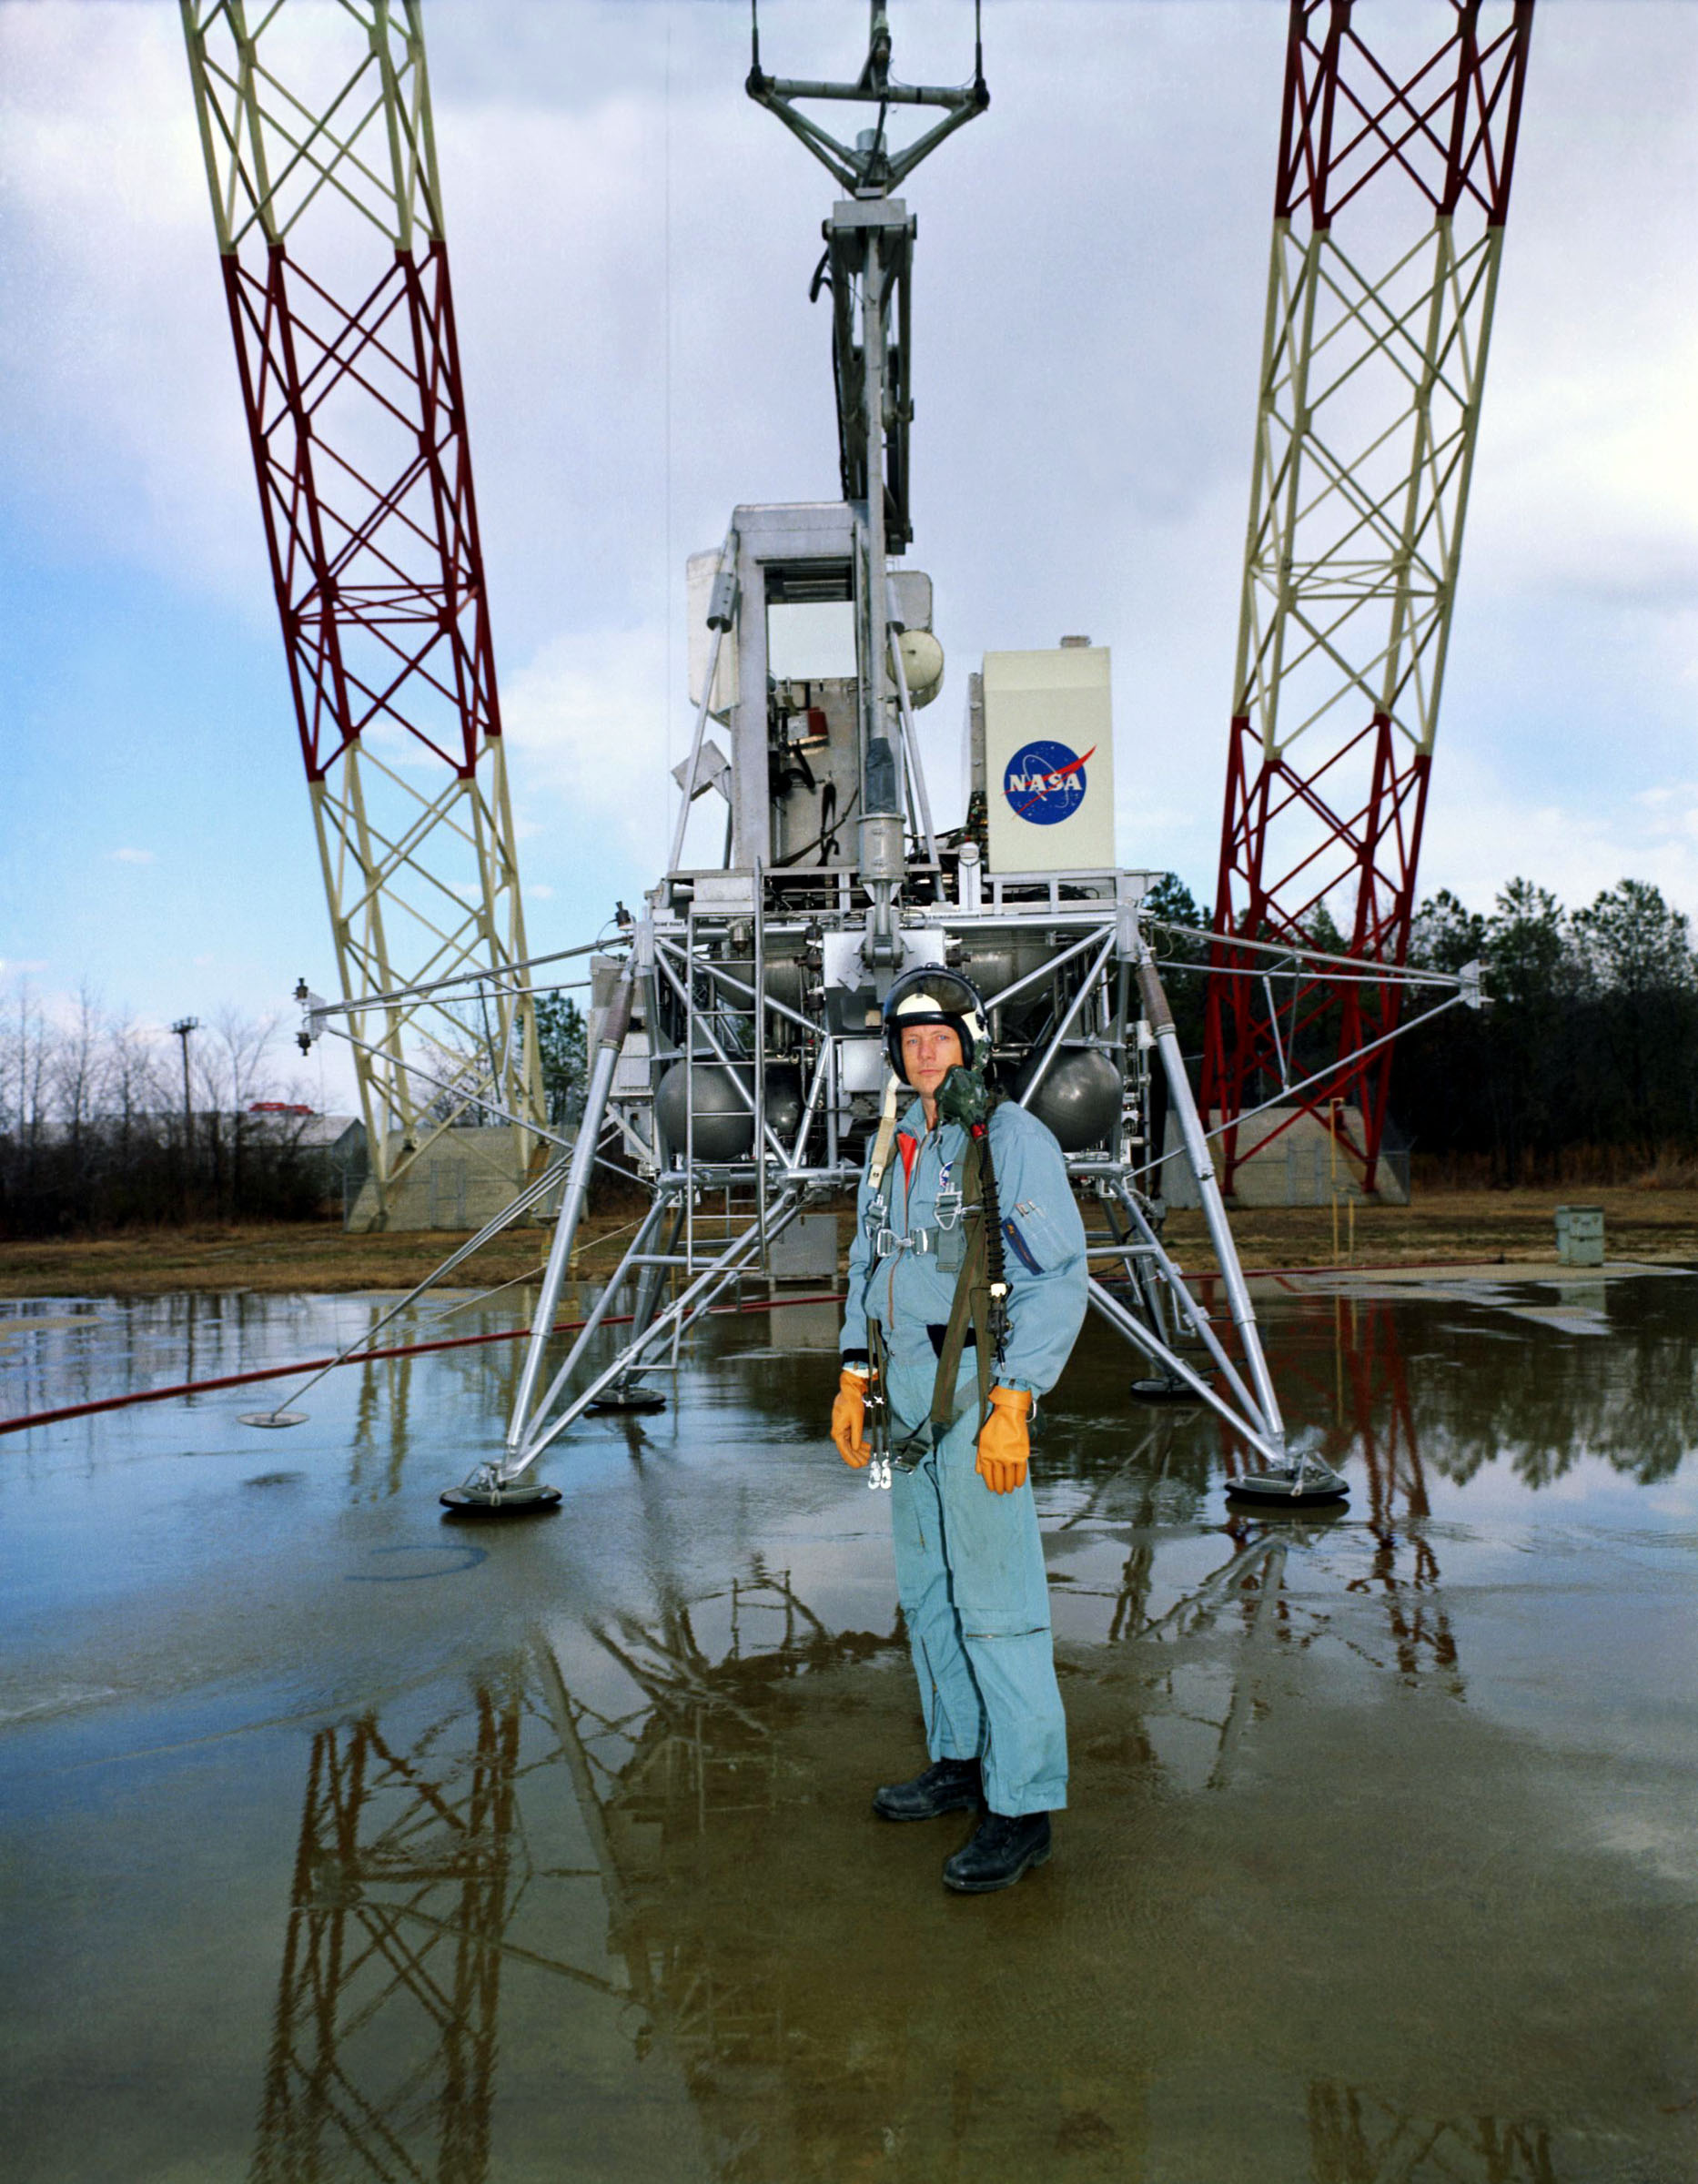 12 February 1969. Neil Armstrong poses at the Lunar Landing Research Facility at NASA Langley. Image by NASA - https://www.hq.nasa.gov/alsj/a11/images11.html, Public Domain, https://commons.wikimedia.org/w/index.php?curid=47324021